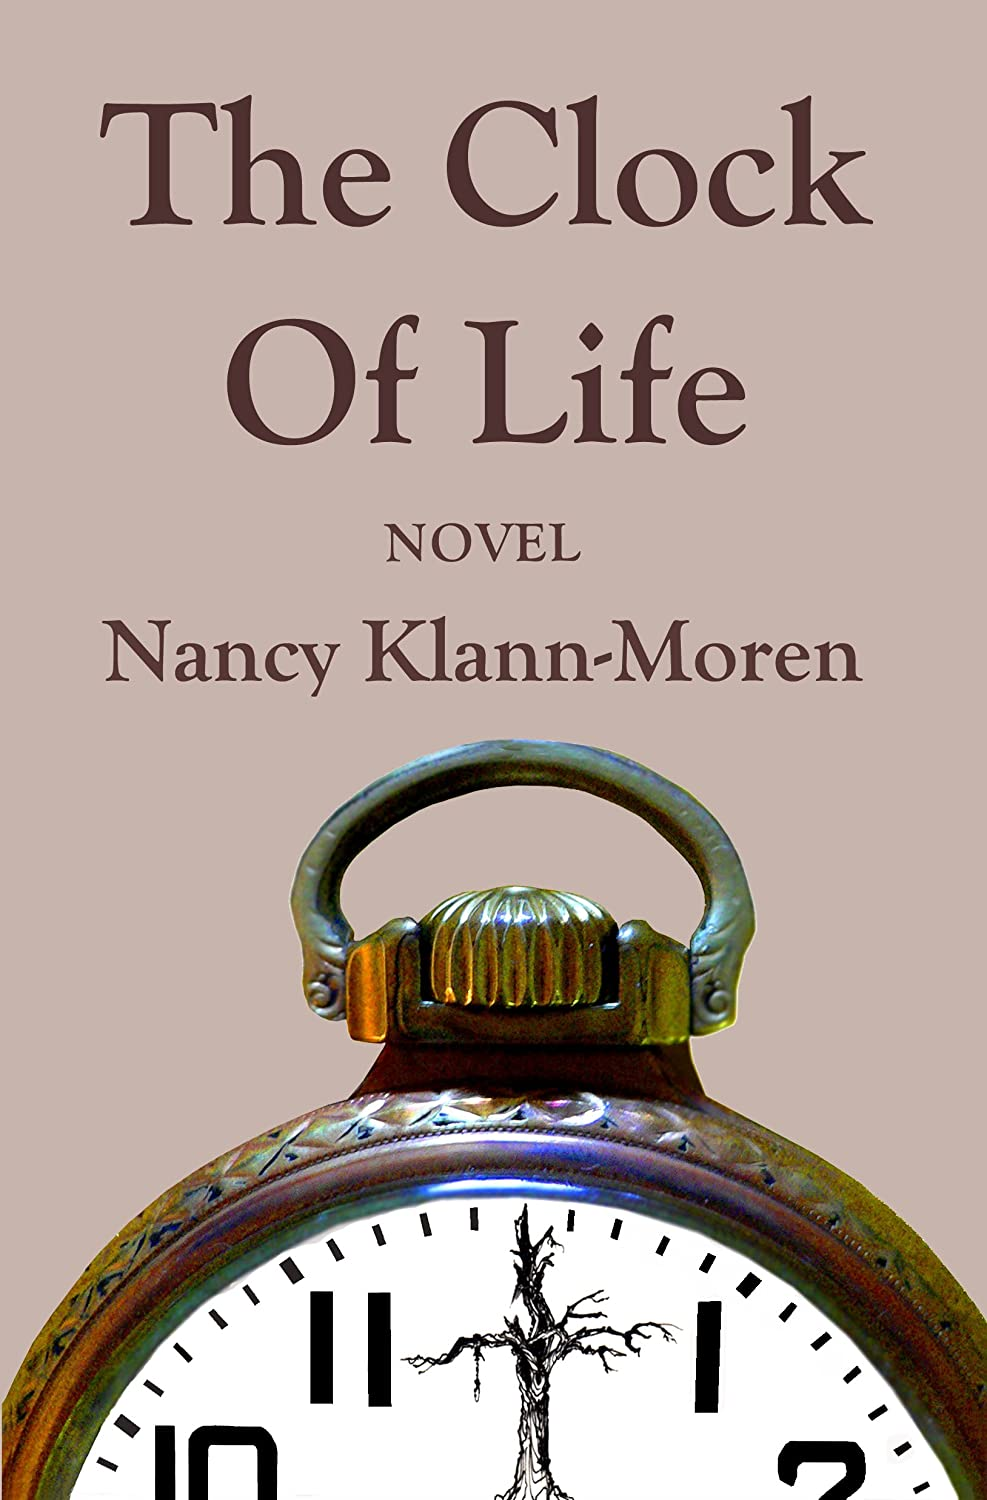 The-Clock-of-Life-Book-Jacket-Front-Nov-2-JPG-small-kb